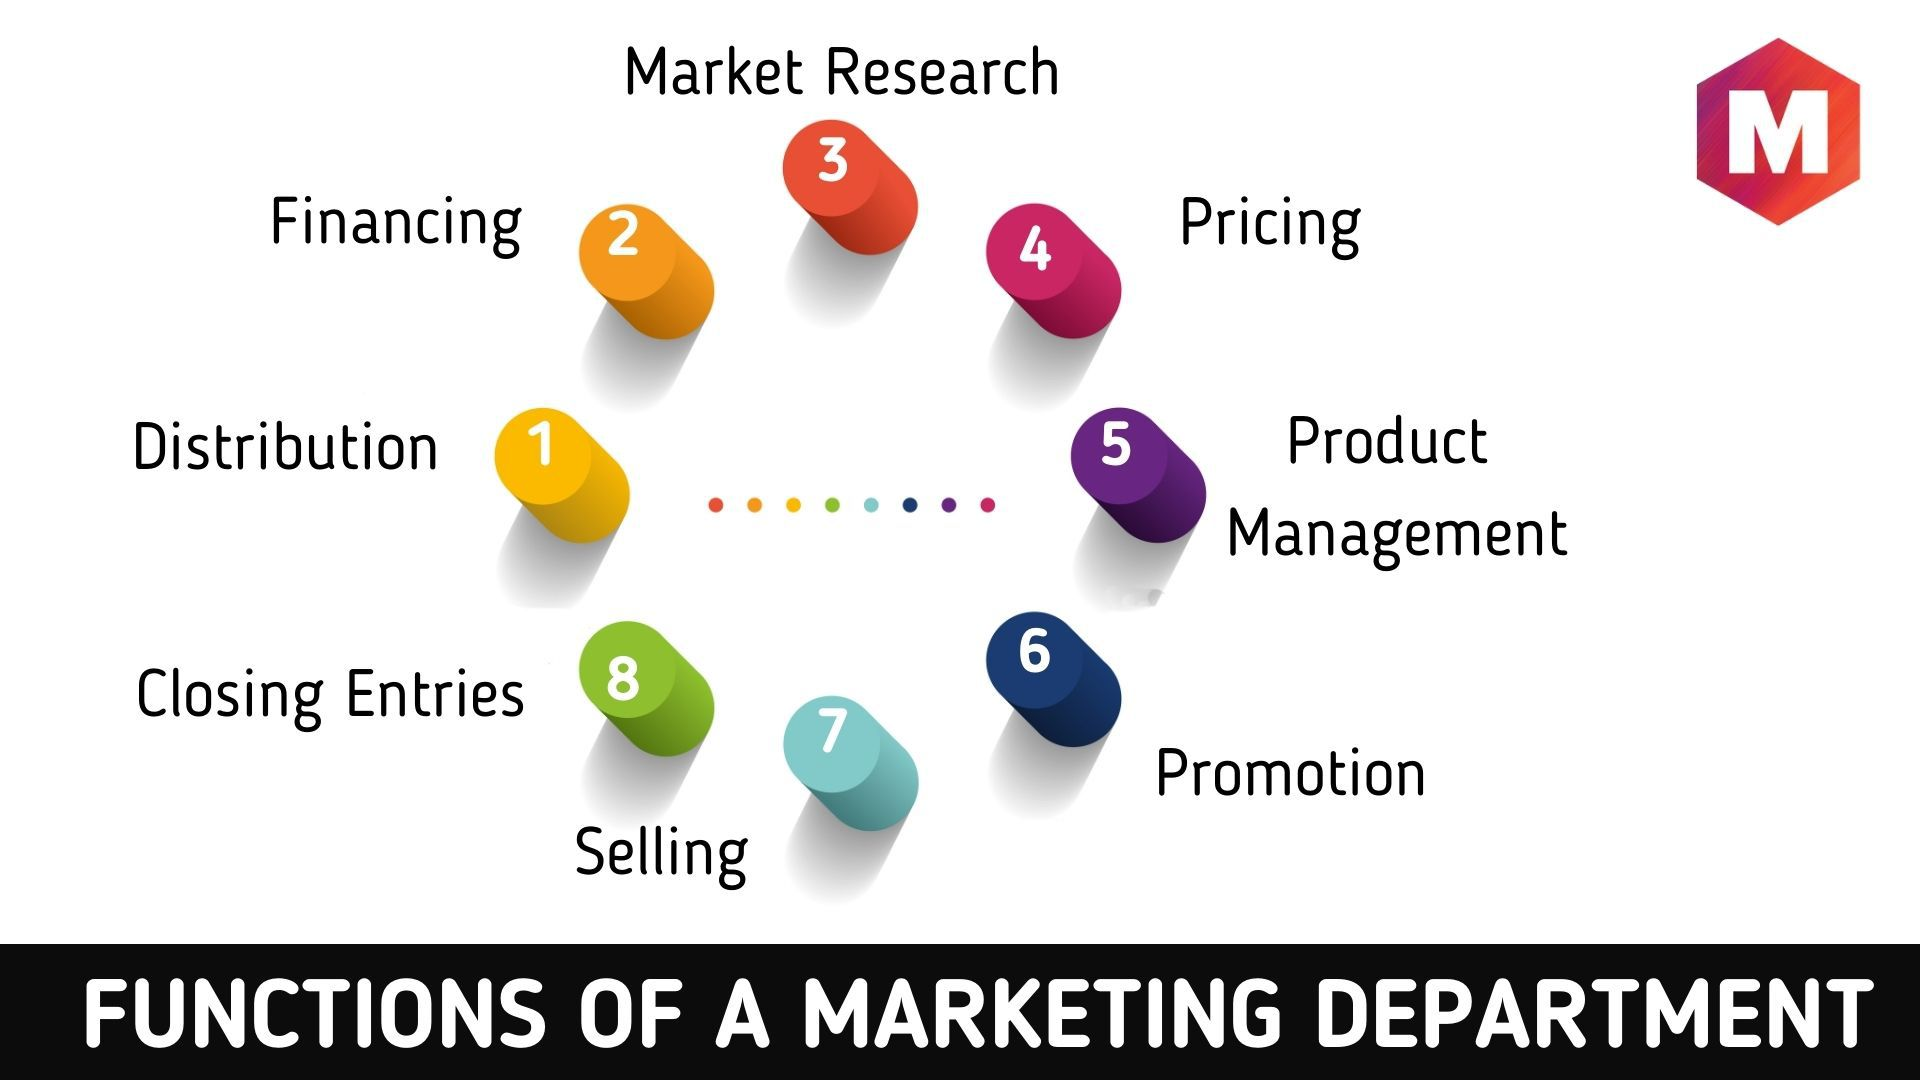 Functions of a Marketing Department